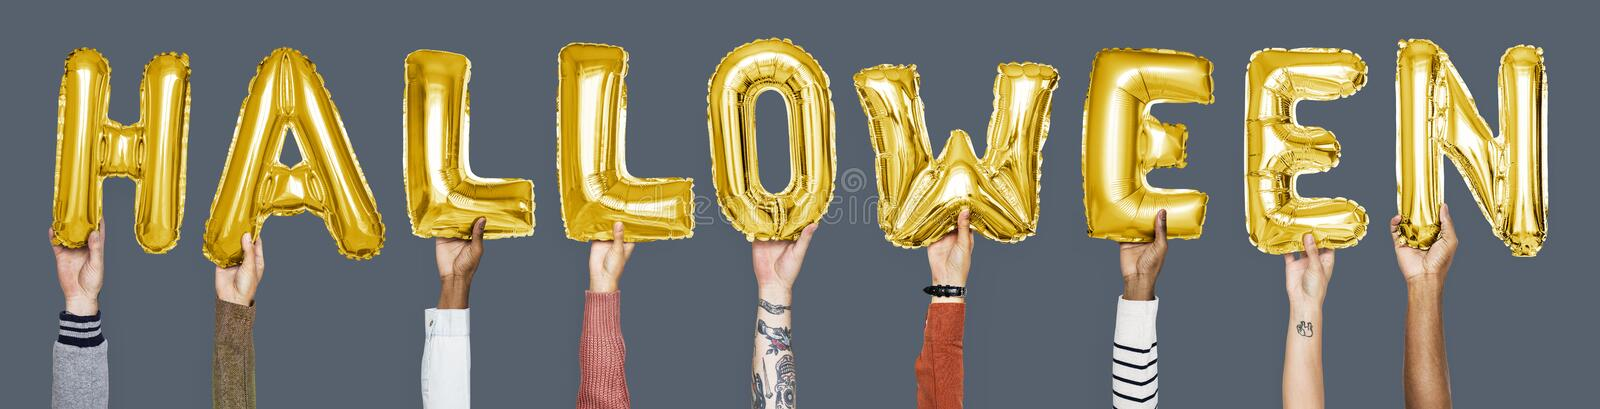 Yellow gold alphabet balloons forming the word halloween royalty free stock images